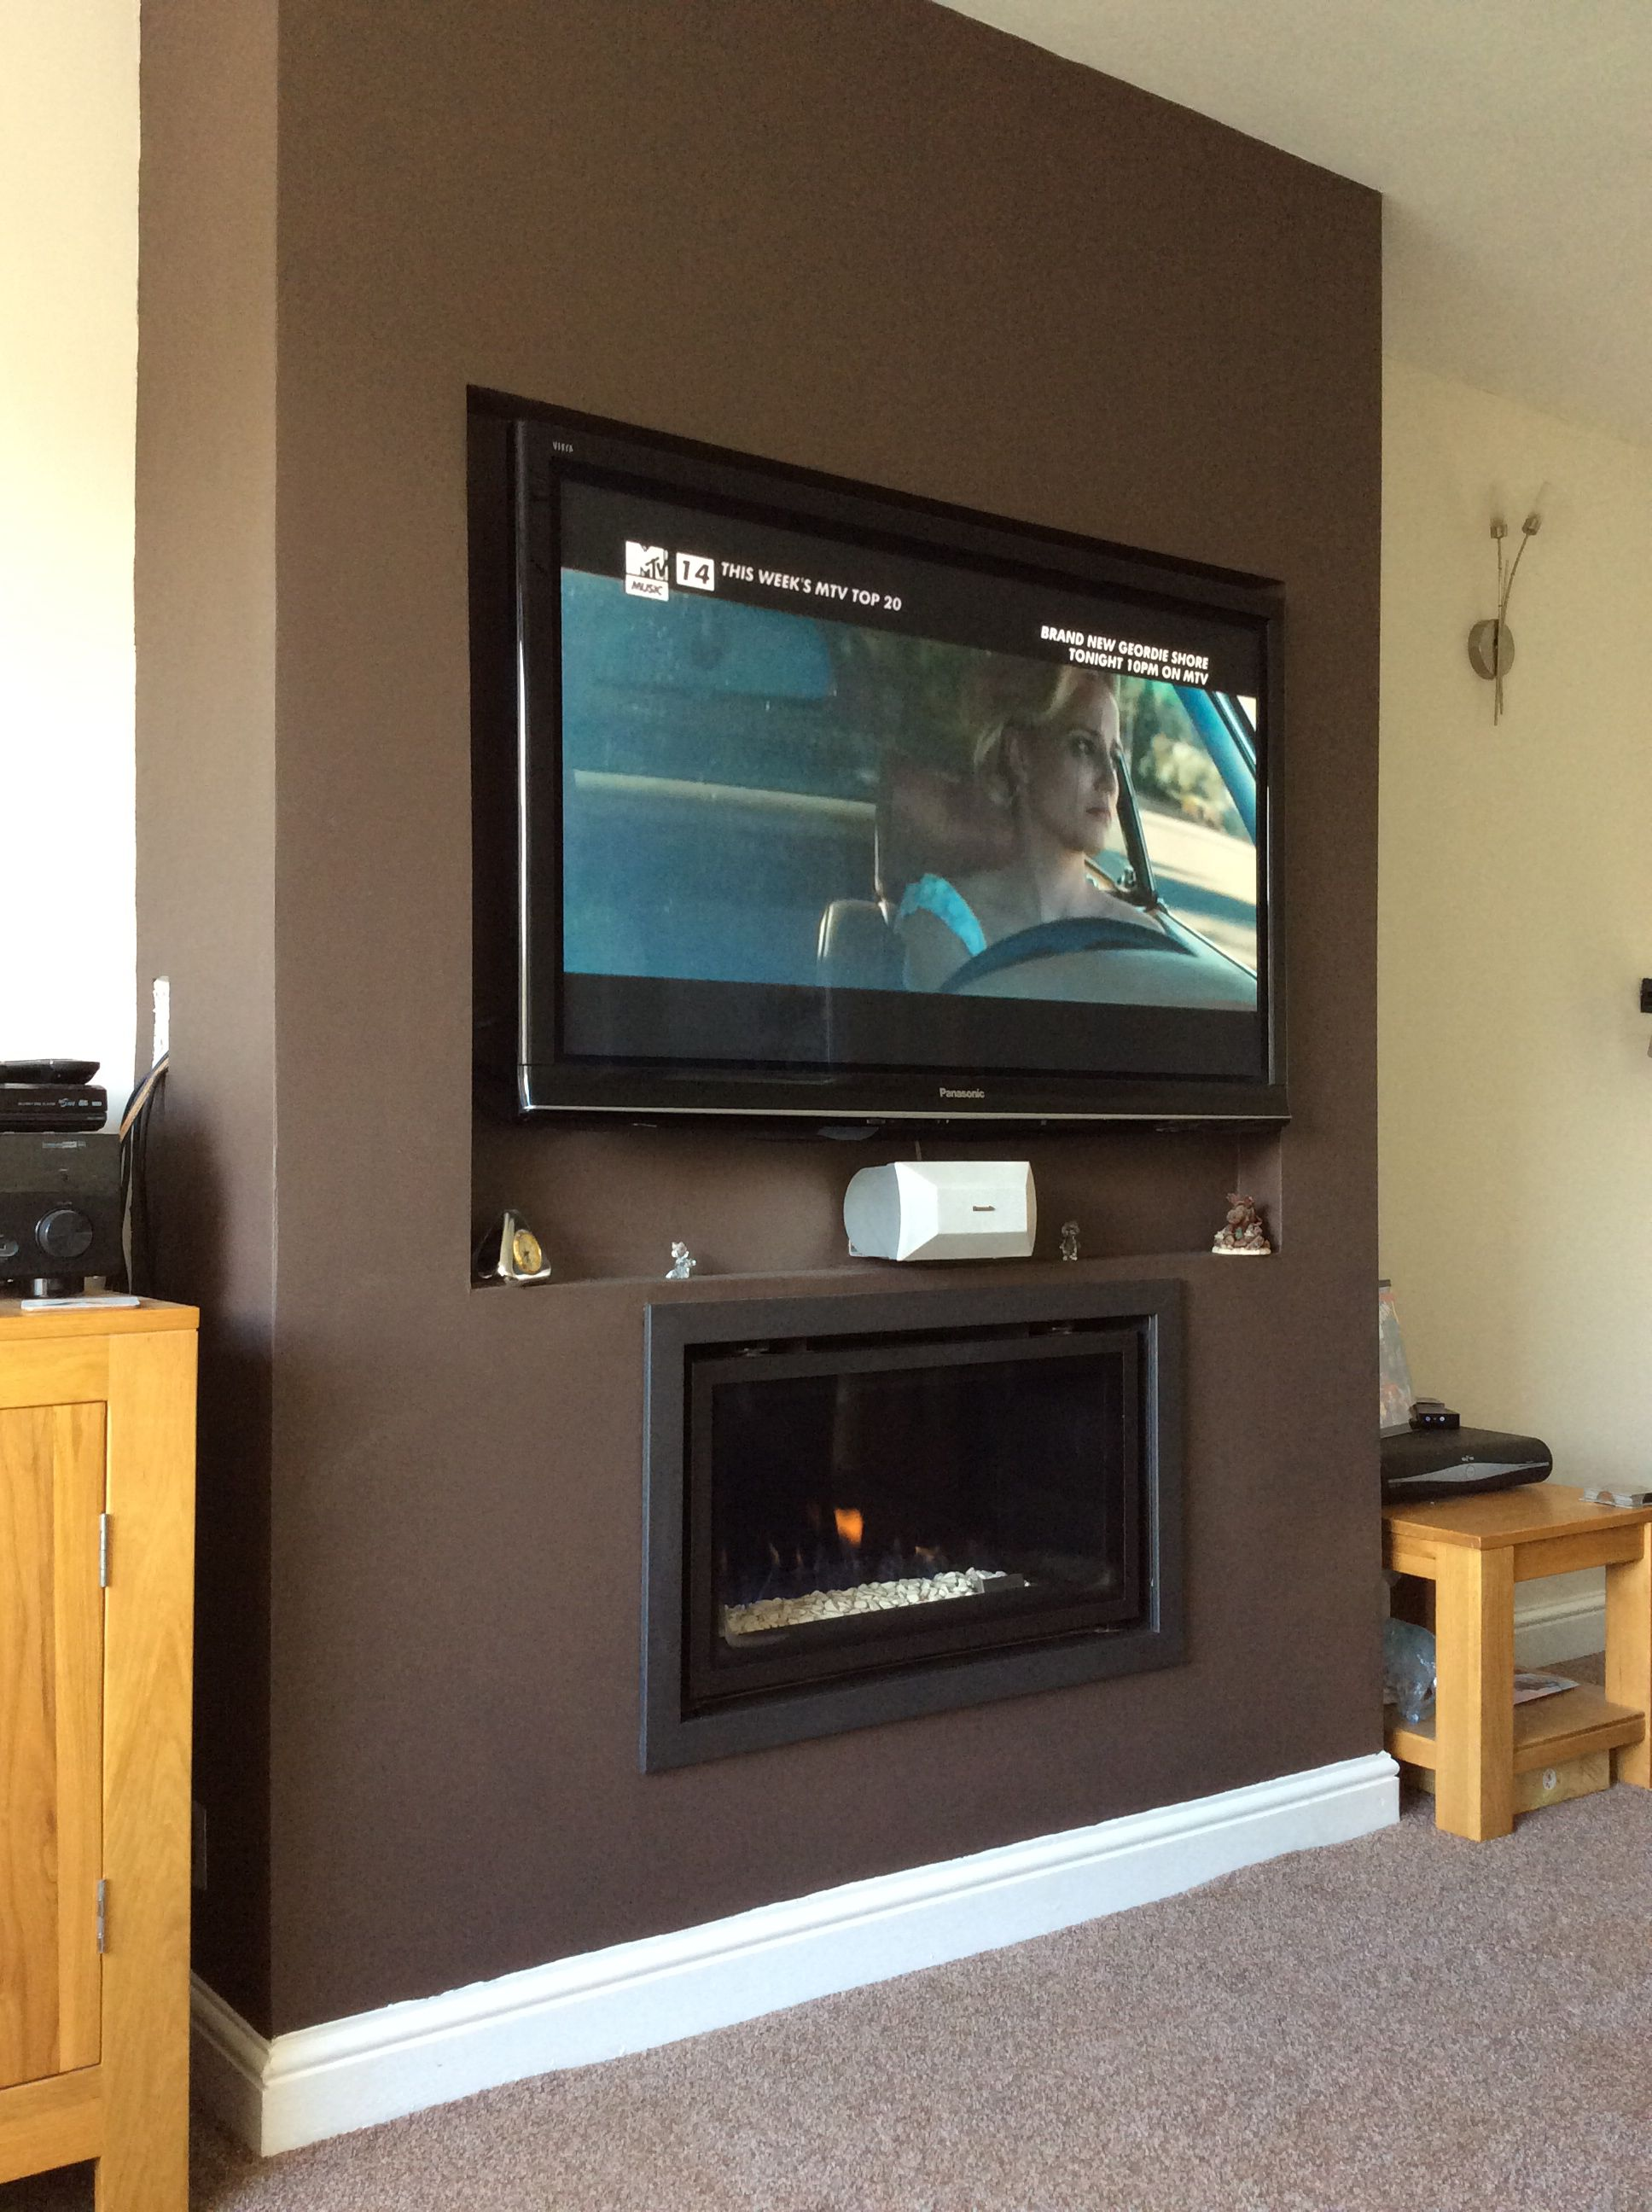 Gasco Studio Hole In The Wall Fire With Panasonic 50 Tv Mounted Above